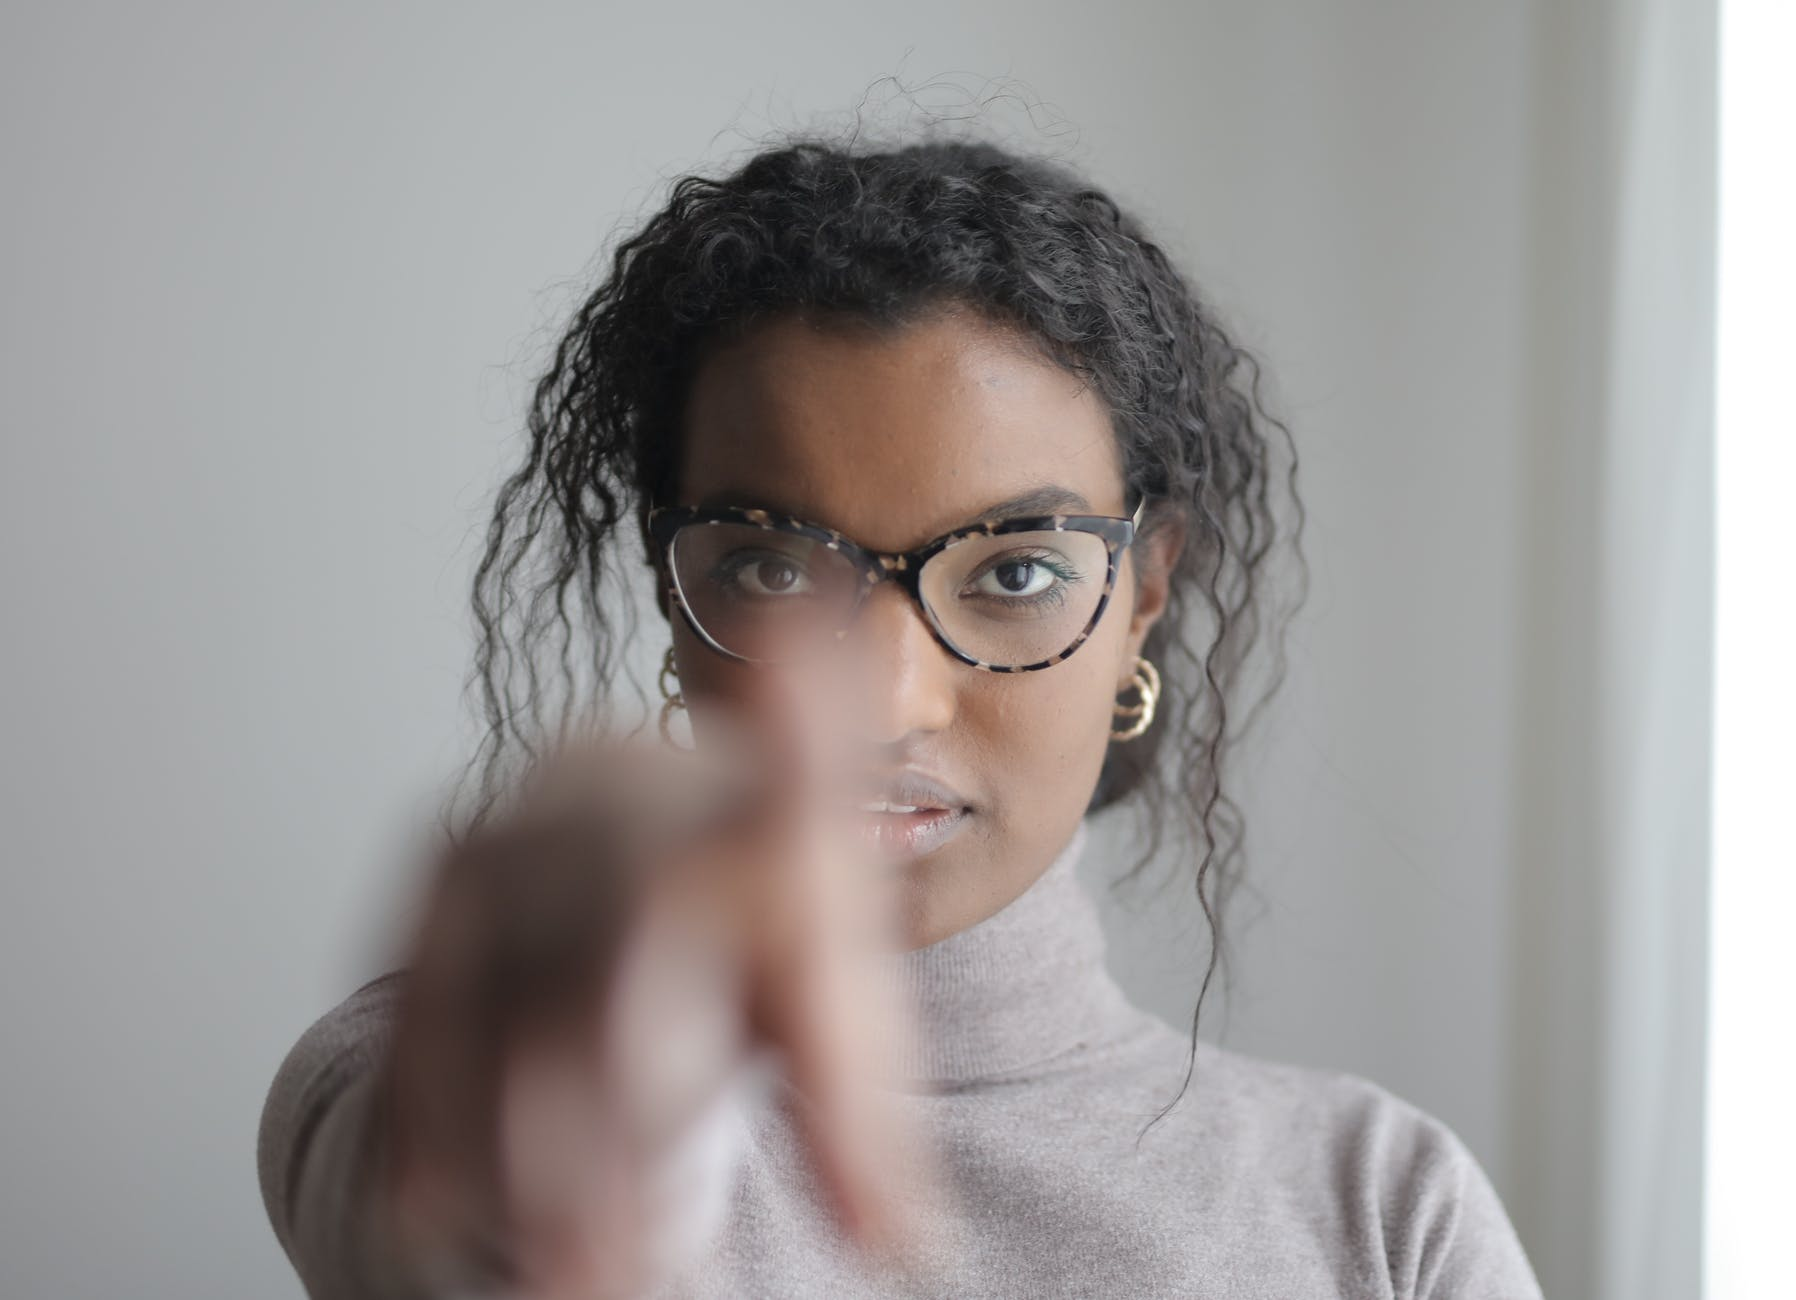 young ethnic woman pointing at camera